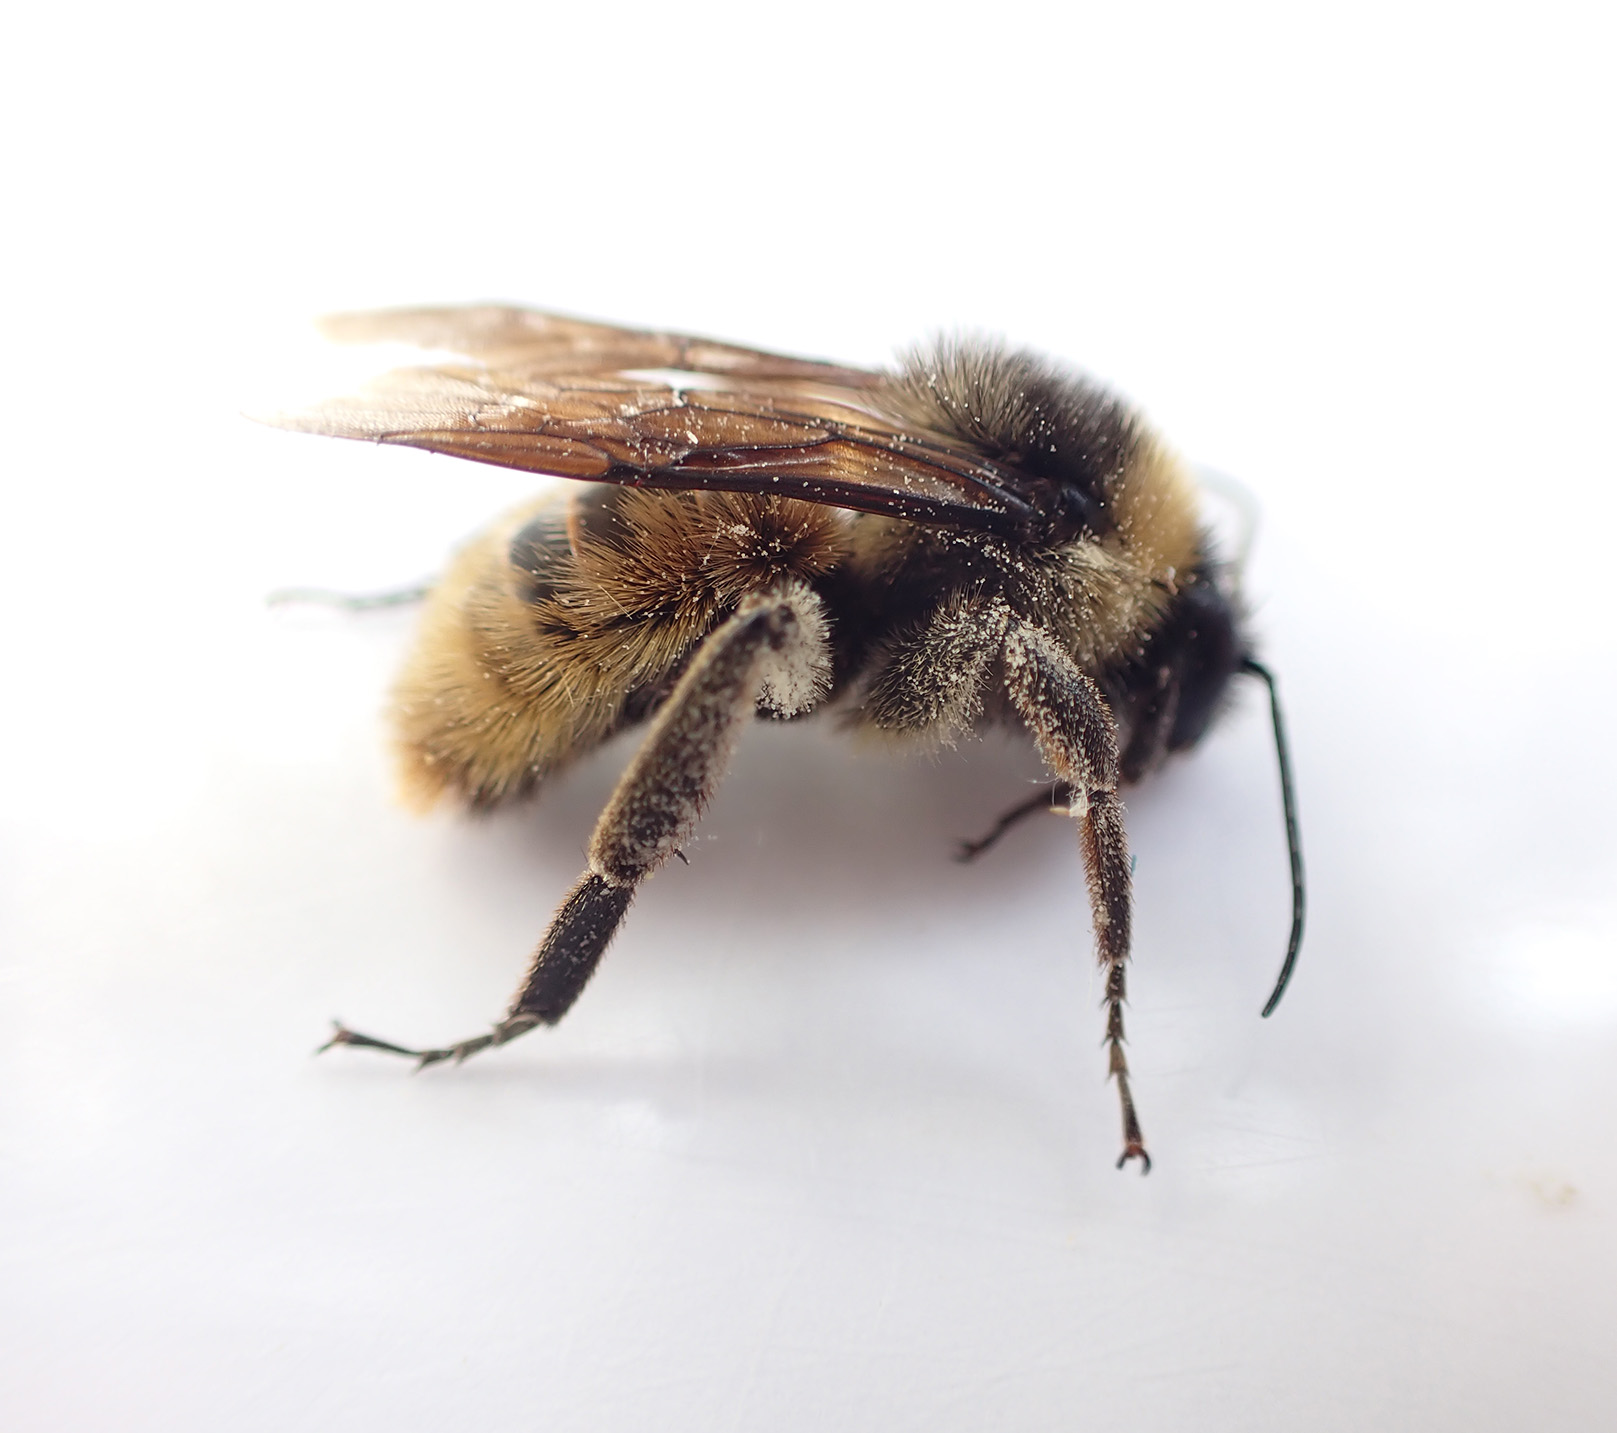 A bumble bee with fuzzy, somewhat distinct body segments, clings to a round, purple flower.